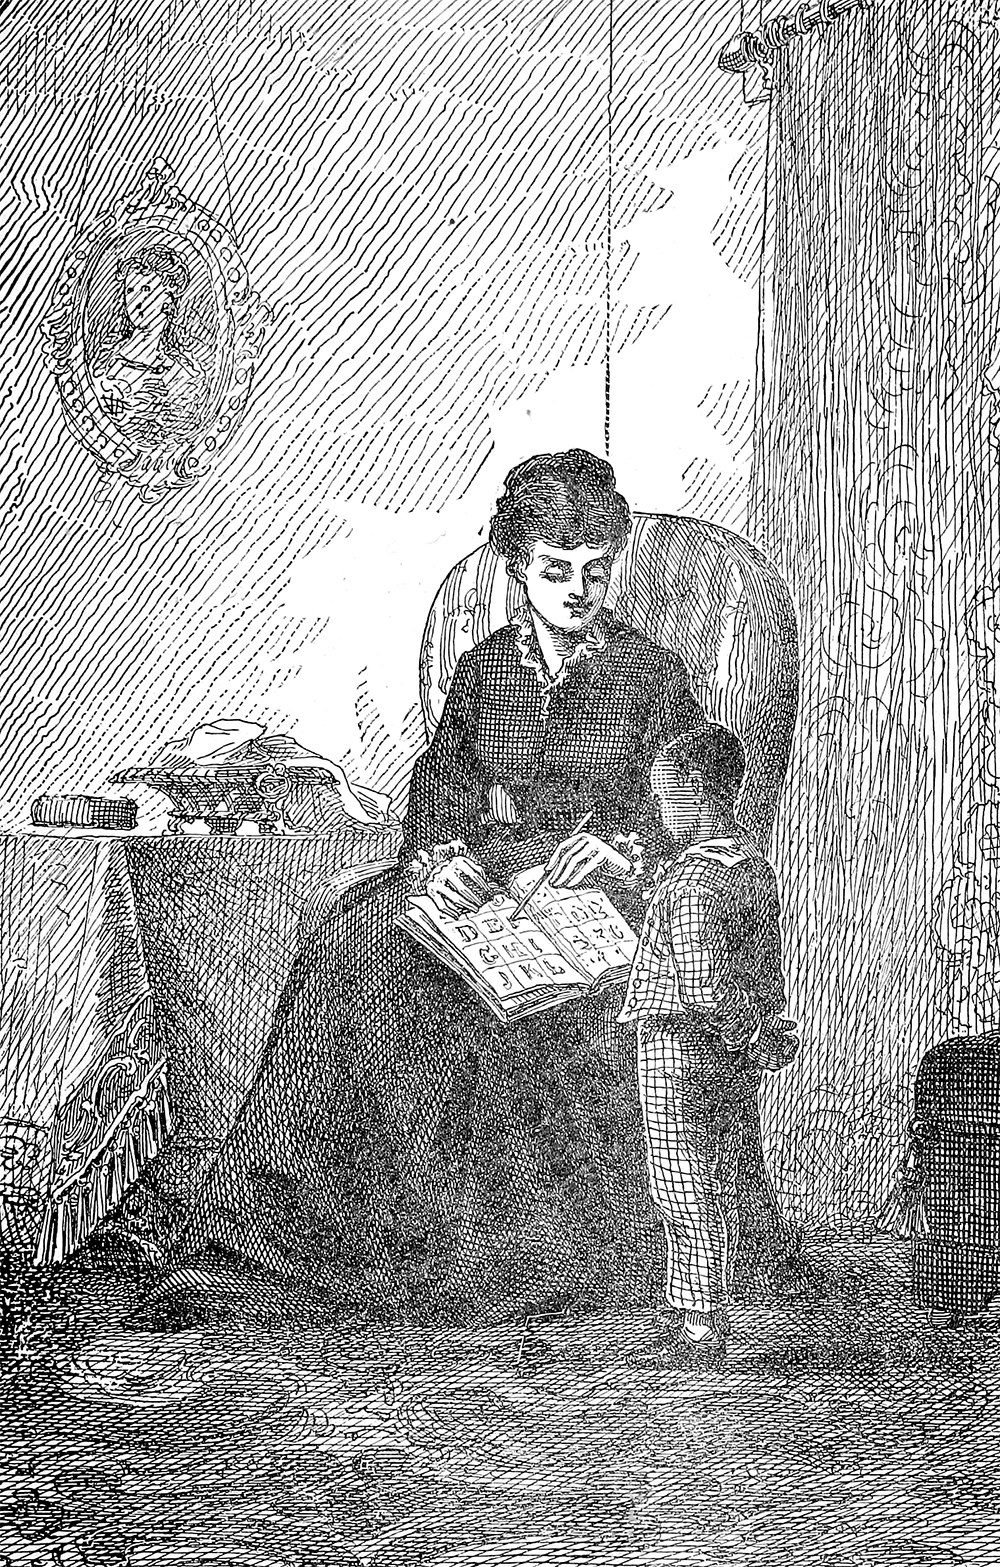 """""""Mrs. Auld Teaching Him to Read,"""" from Life and Times of Frederick Douglass, revised edition, 1892. Internet Archive."""